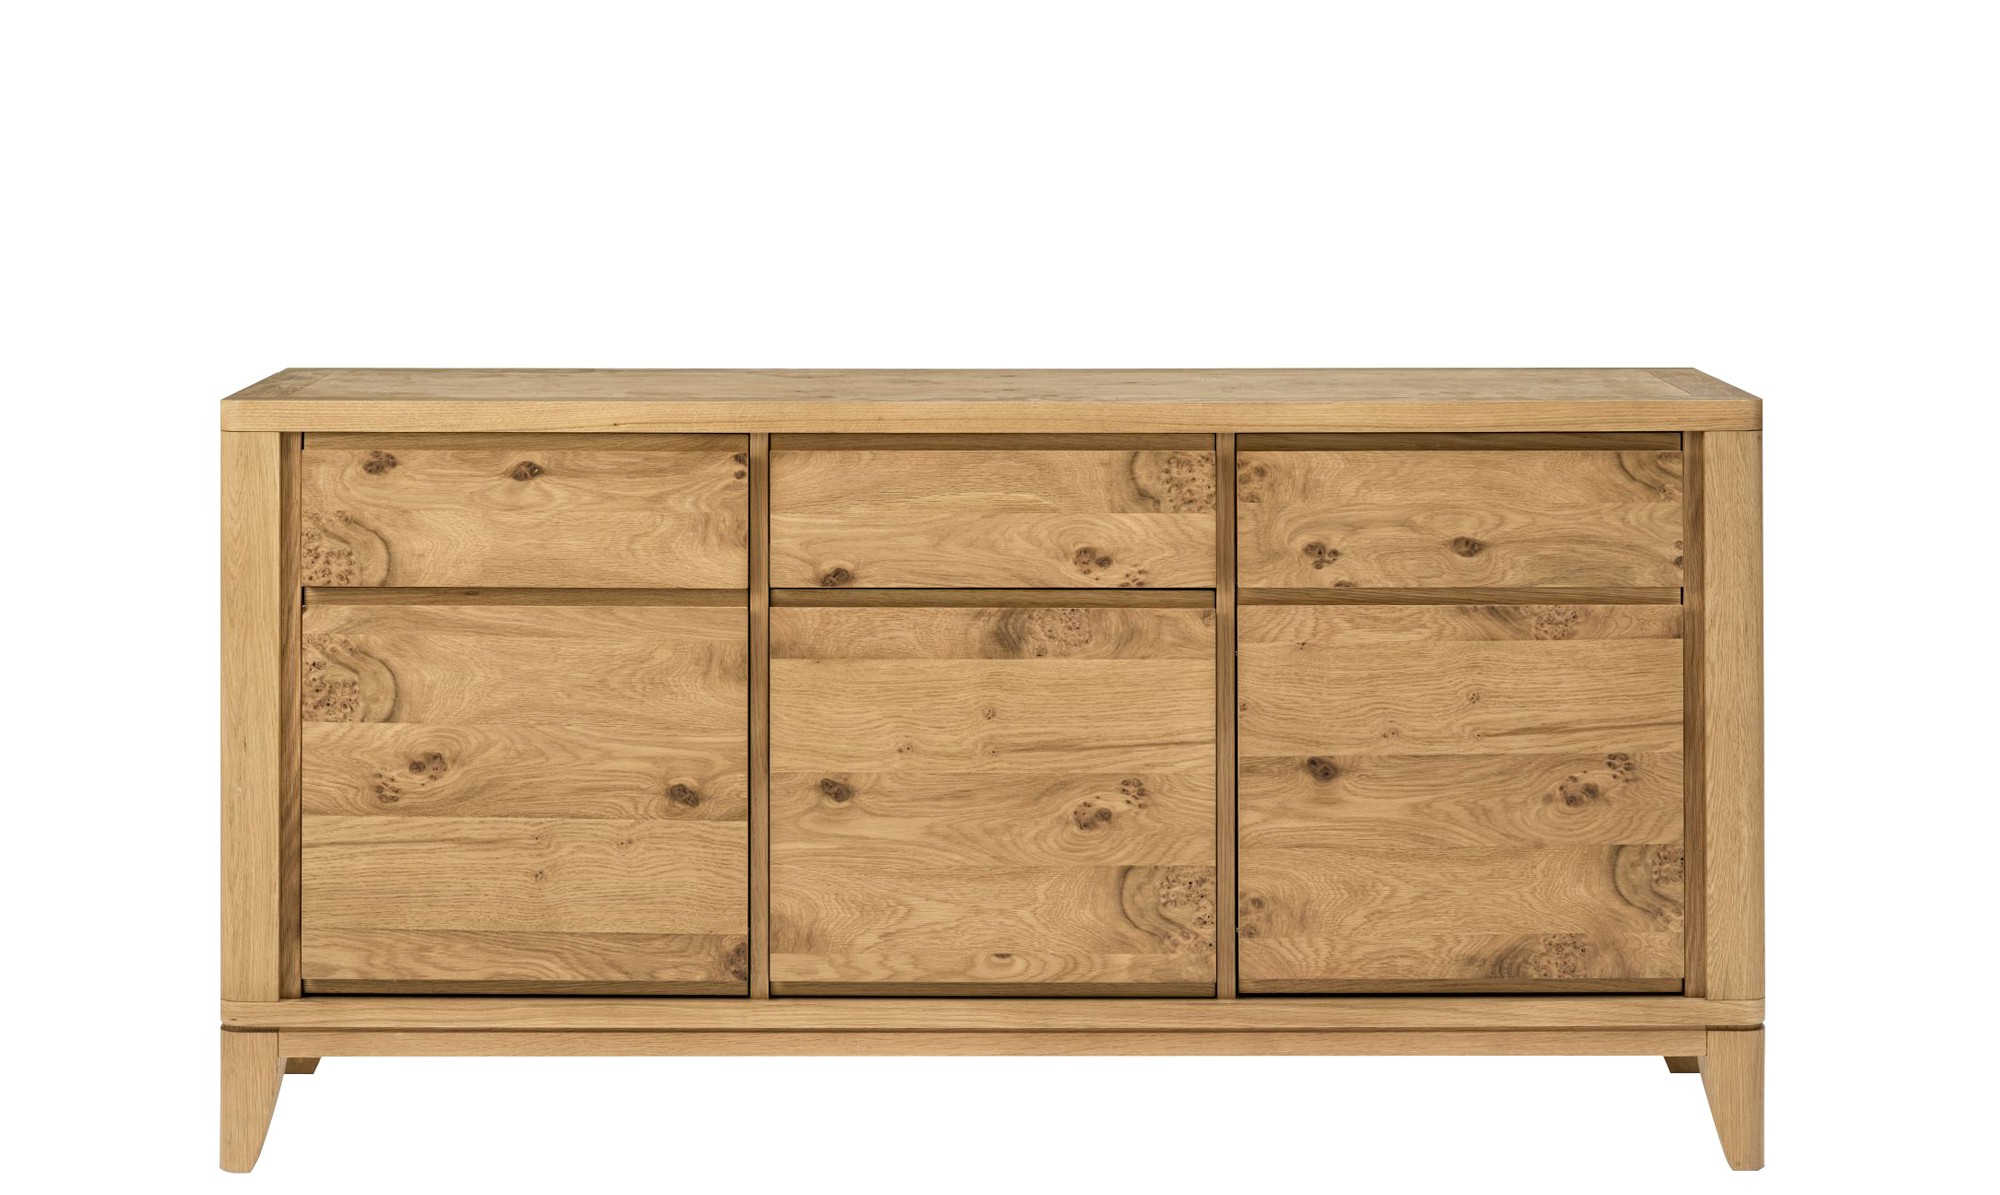 Dark Smoked Oak With White Marble Top Sideboards